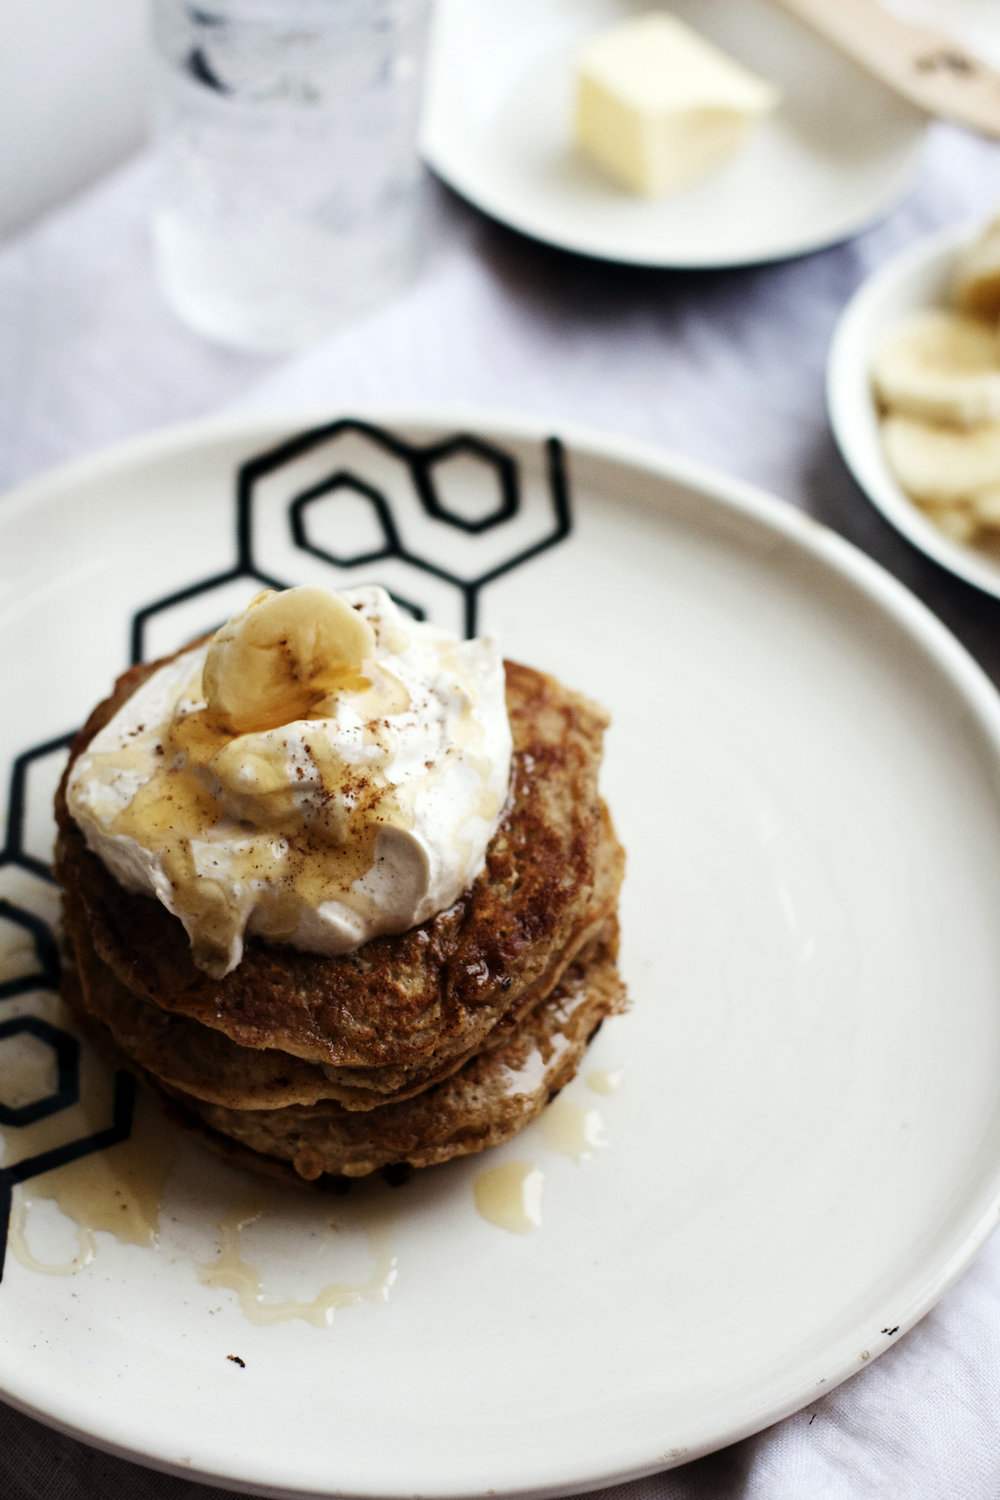 Brown Butter Banana Oatmeal Pancakes w/ Peanut Butter Whipped Cream + Honey (gluten-free + refined sugar free) | Ruby Josephine